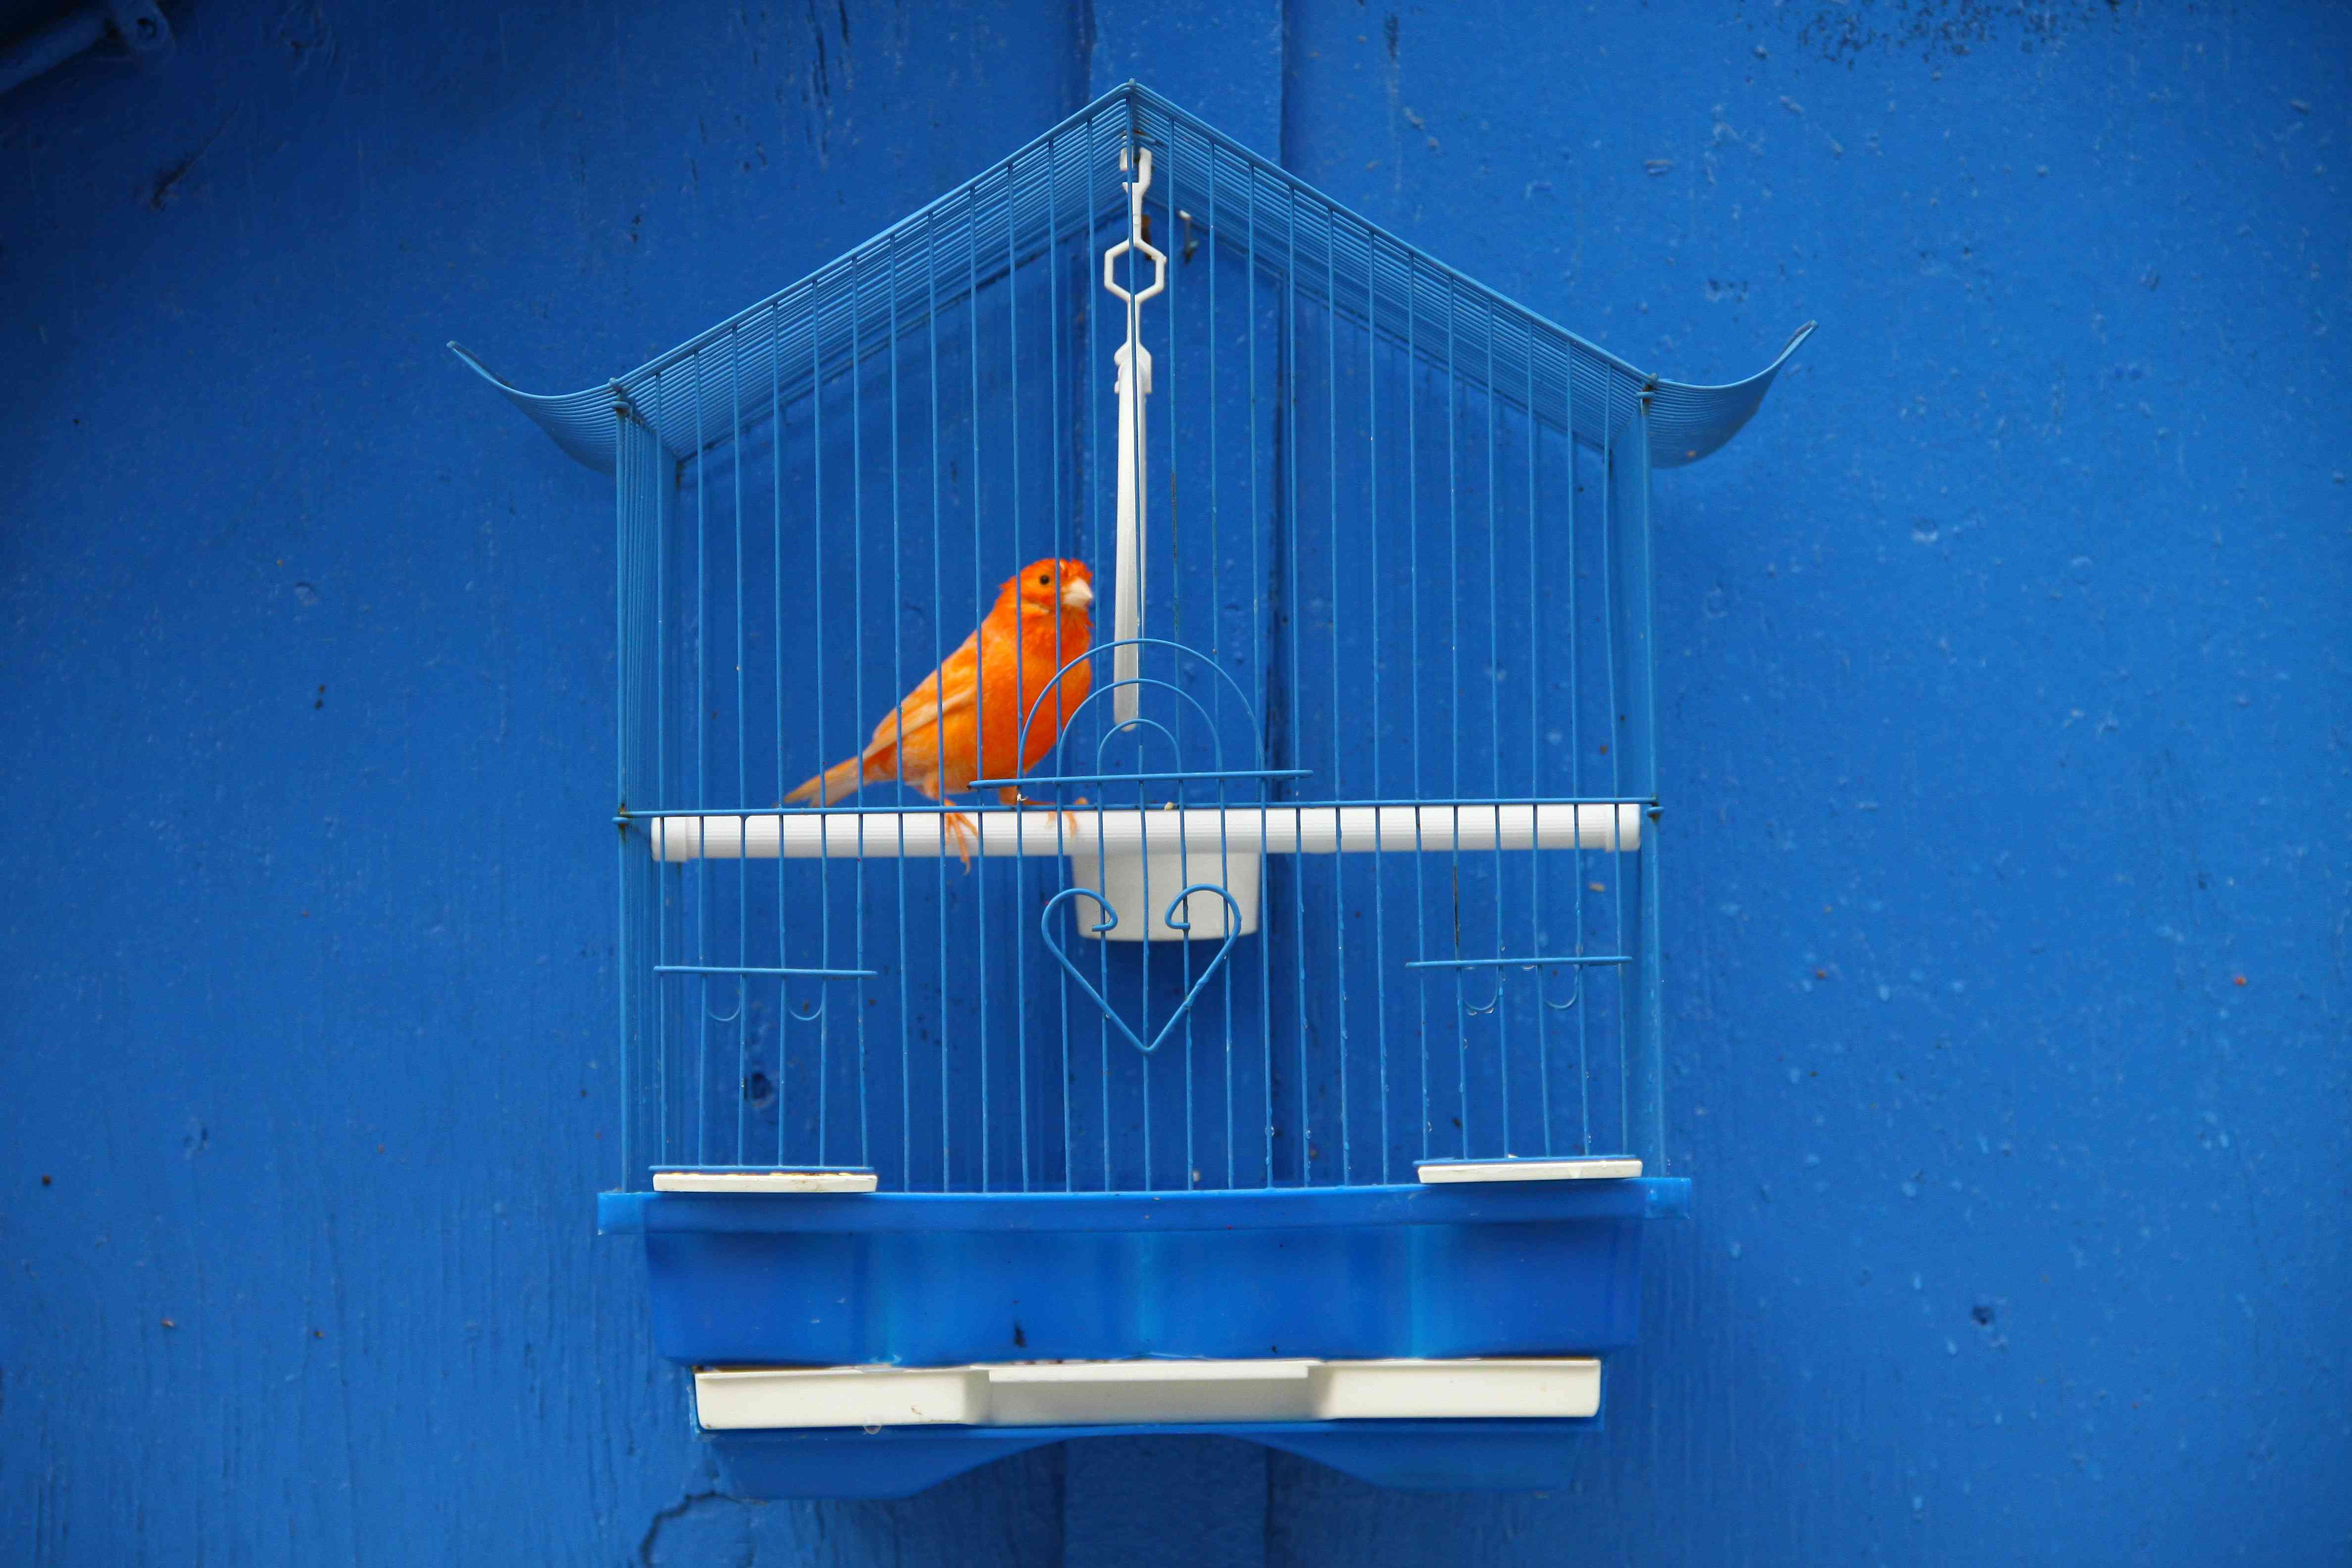 red canary in blue cage against blue wall